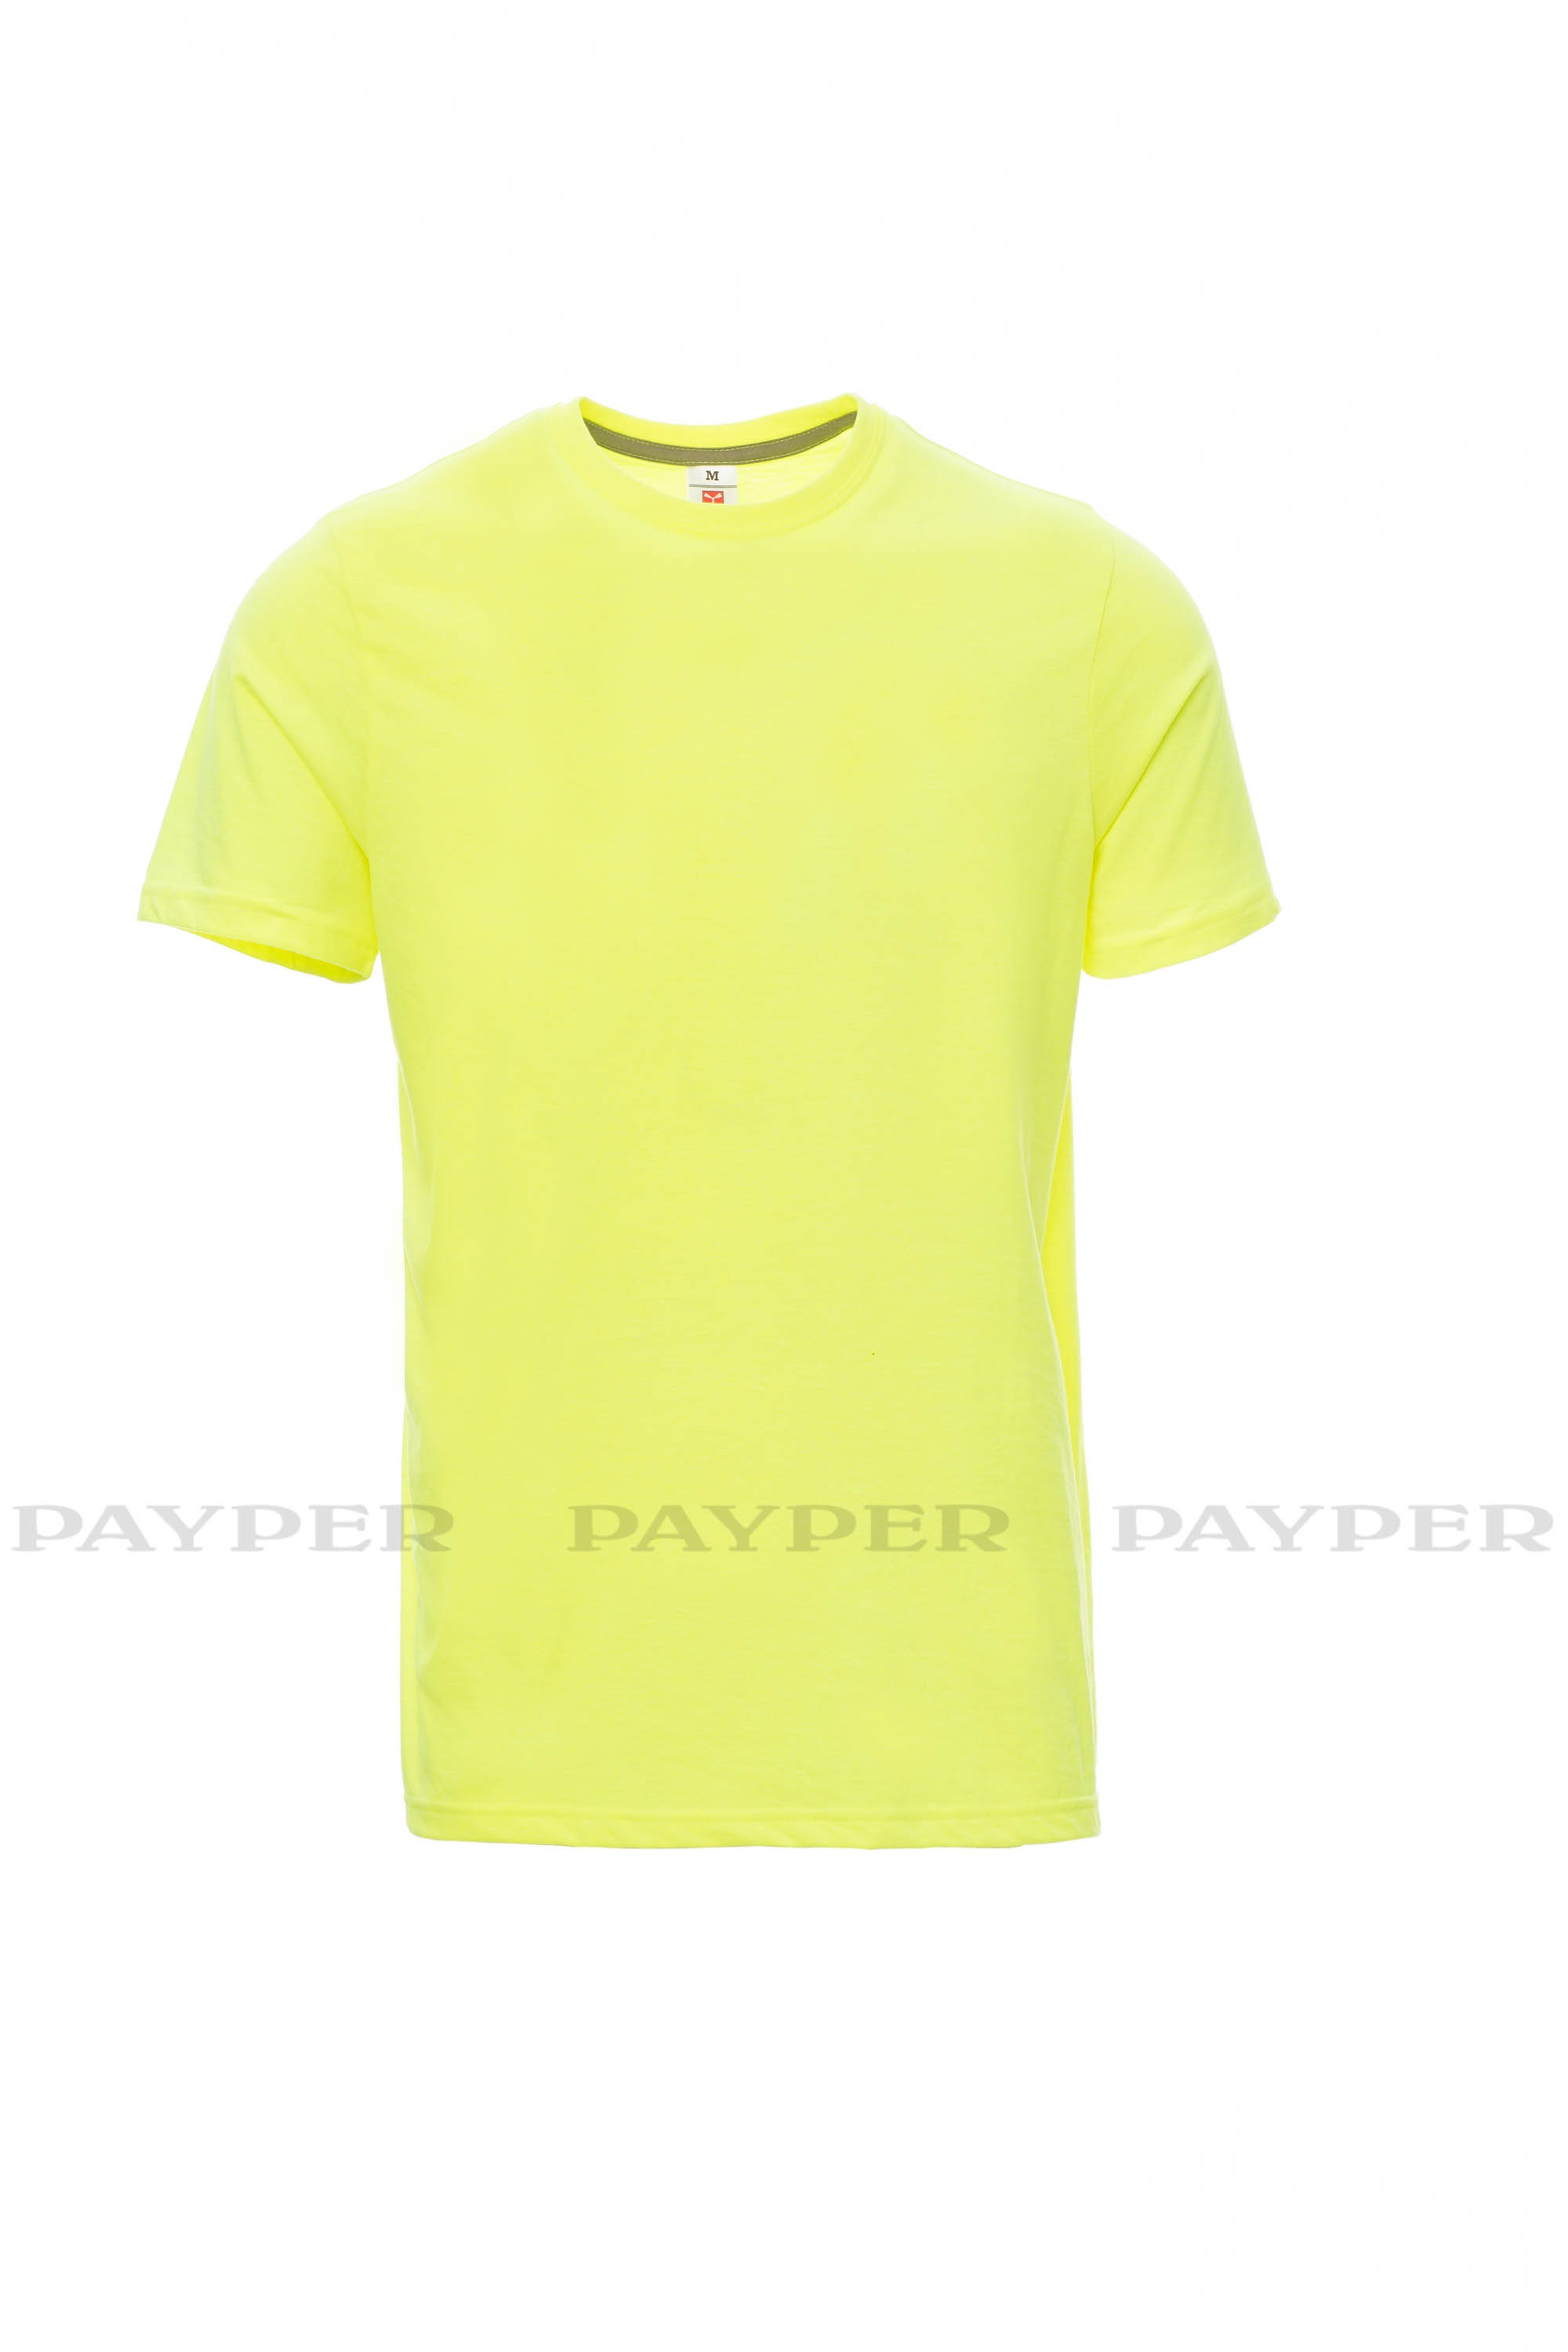 T-SHIRT M/CORTA ART.SUNSET FLUO/MIMETICO